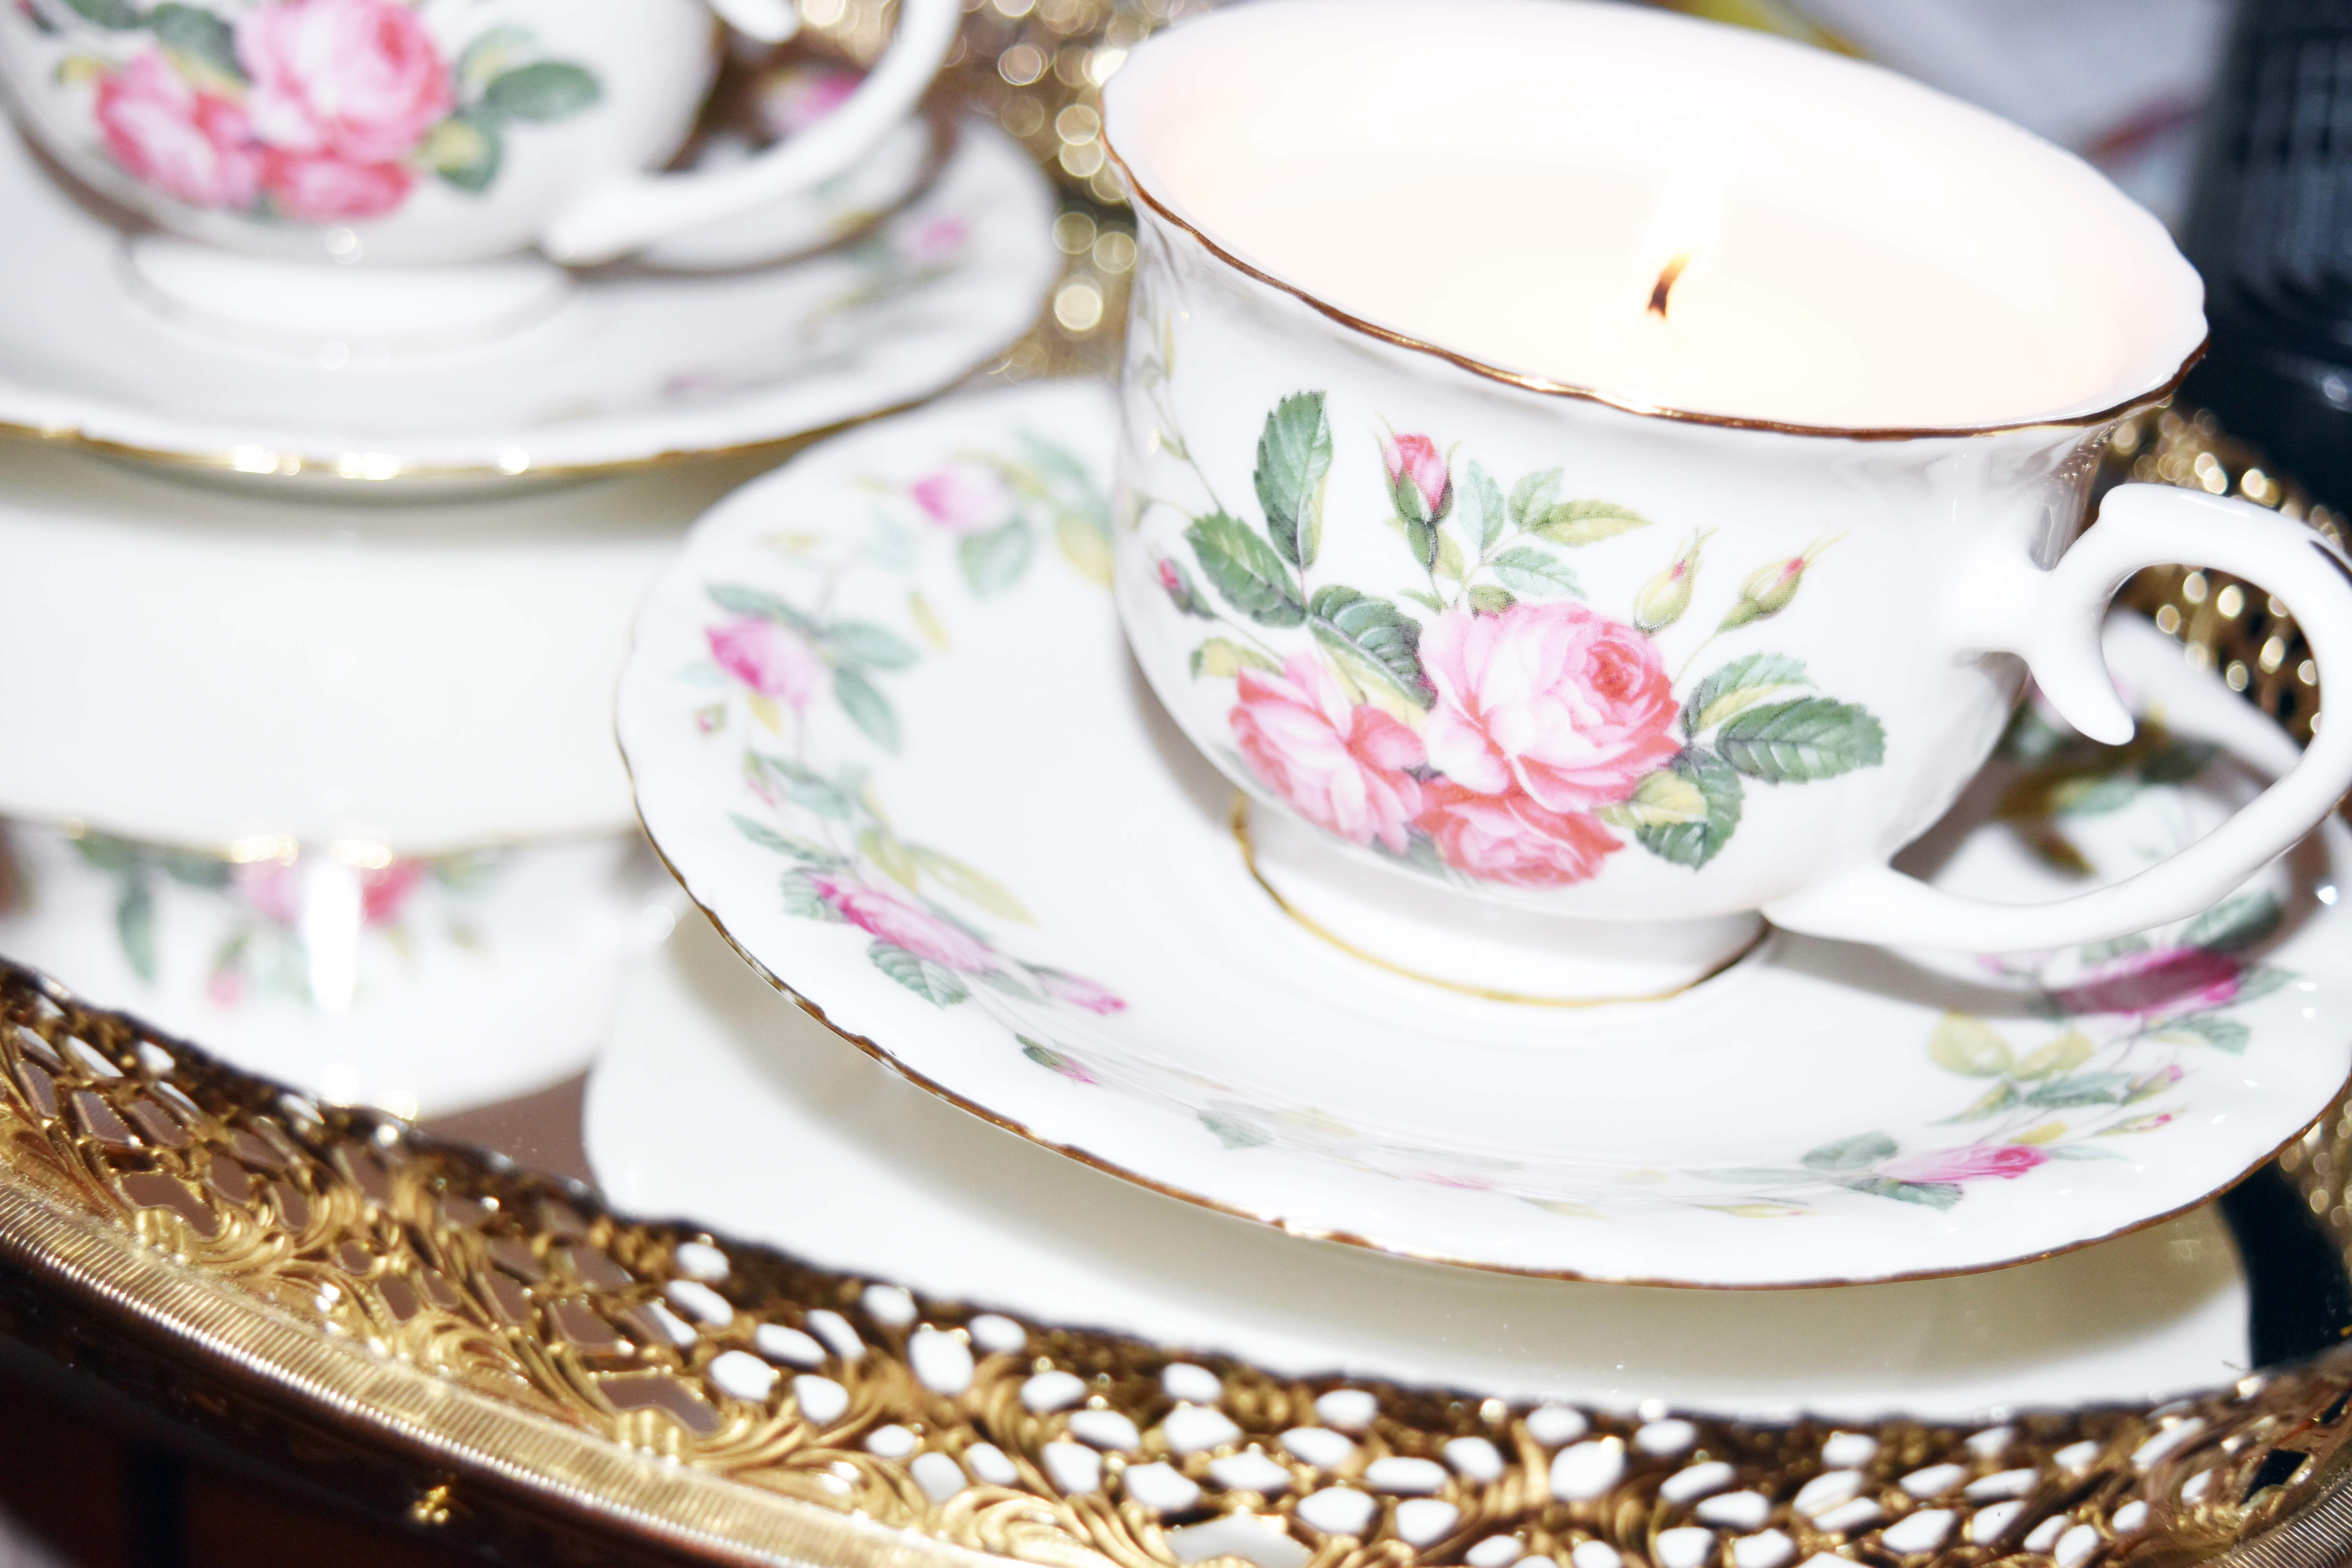 DIY Teacup Candle 7